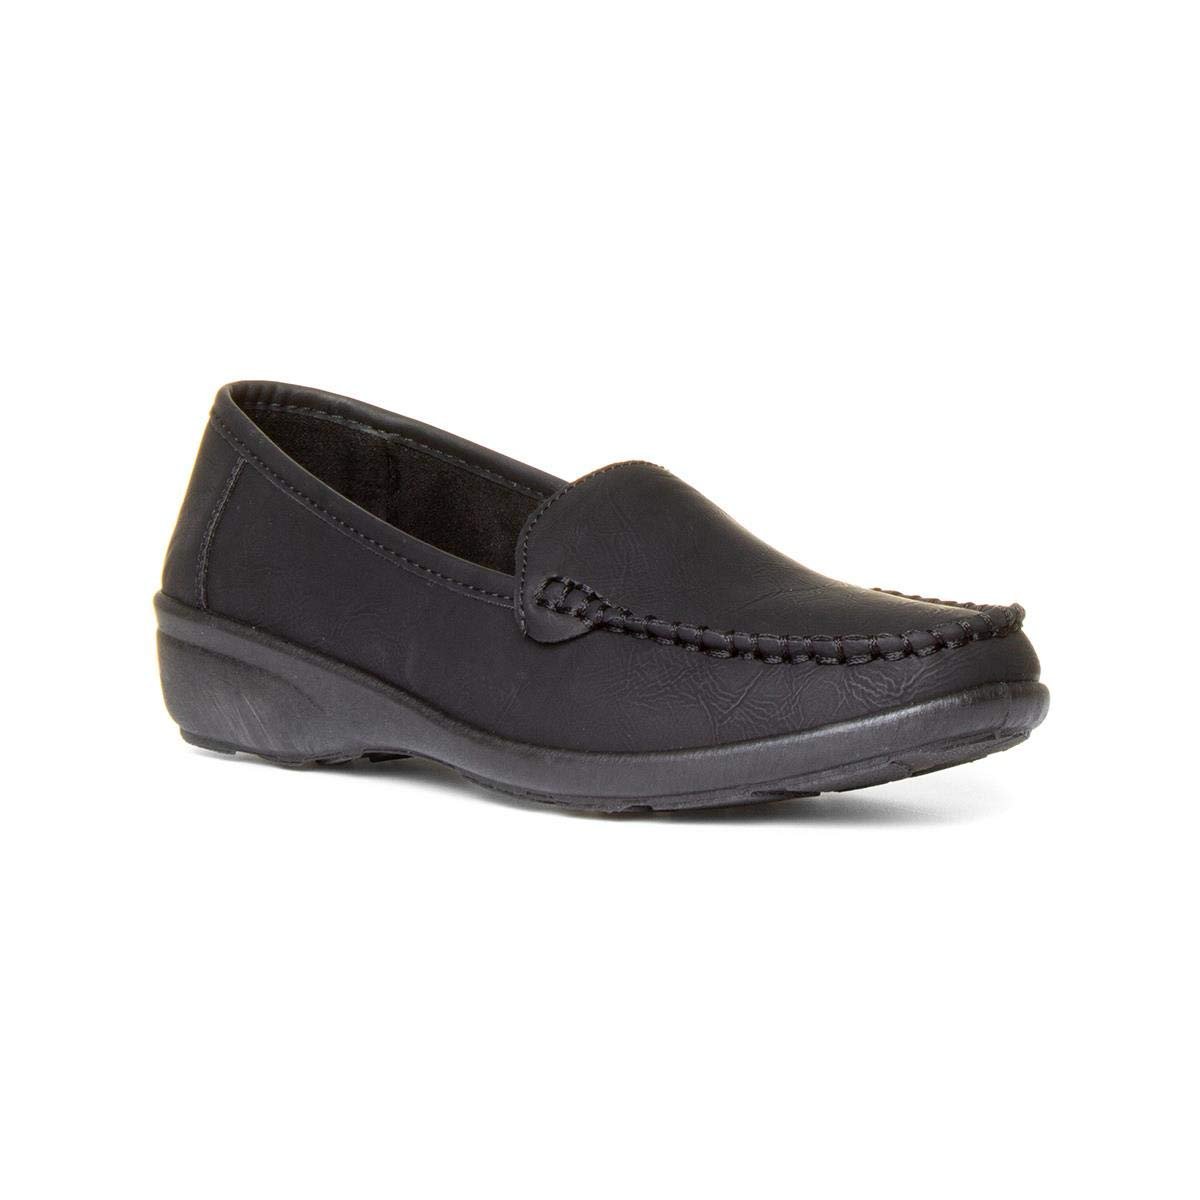 000d86ed2bf Softlites Womens Black Casual Comfort Loafer Shoe  Amazon.co.uk  Shoes    Bags